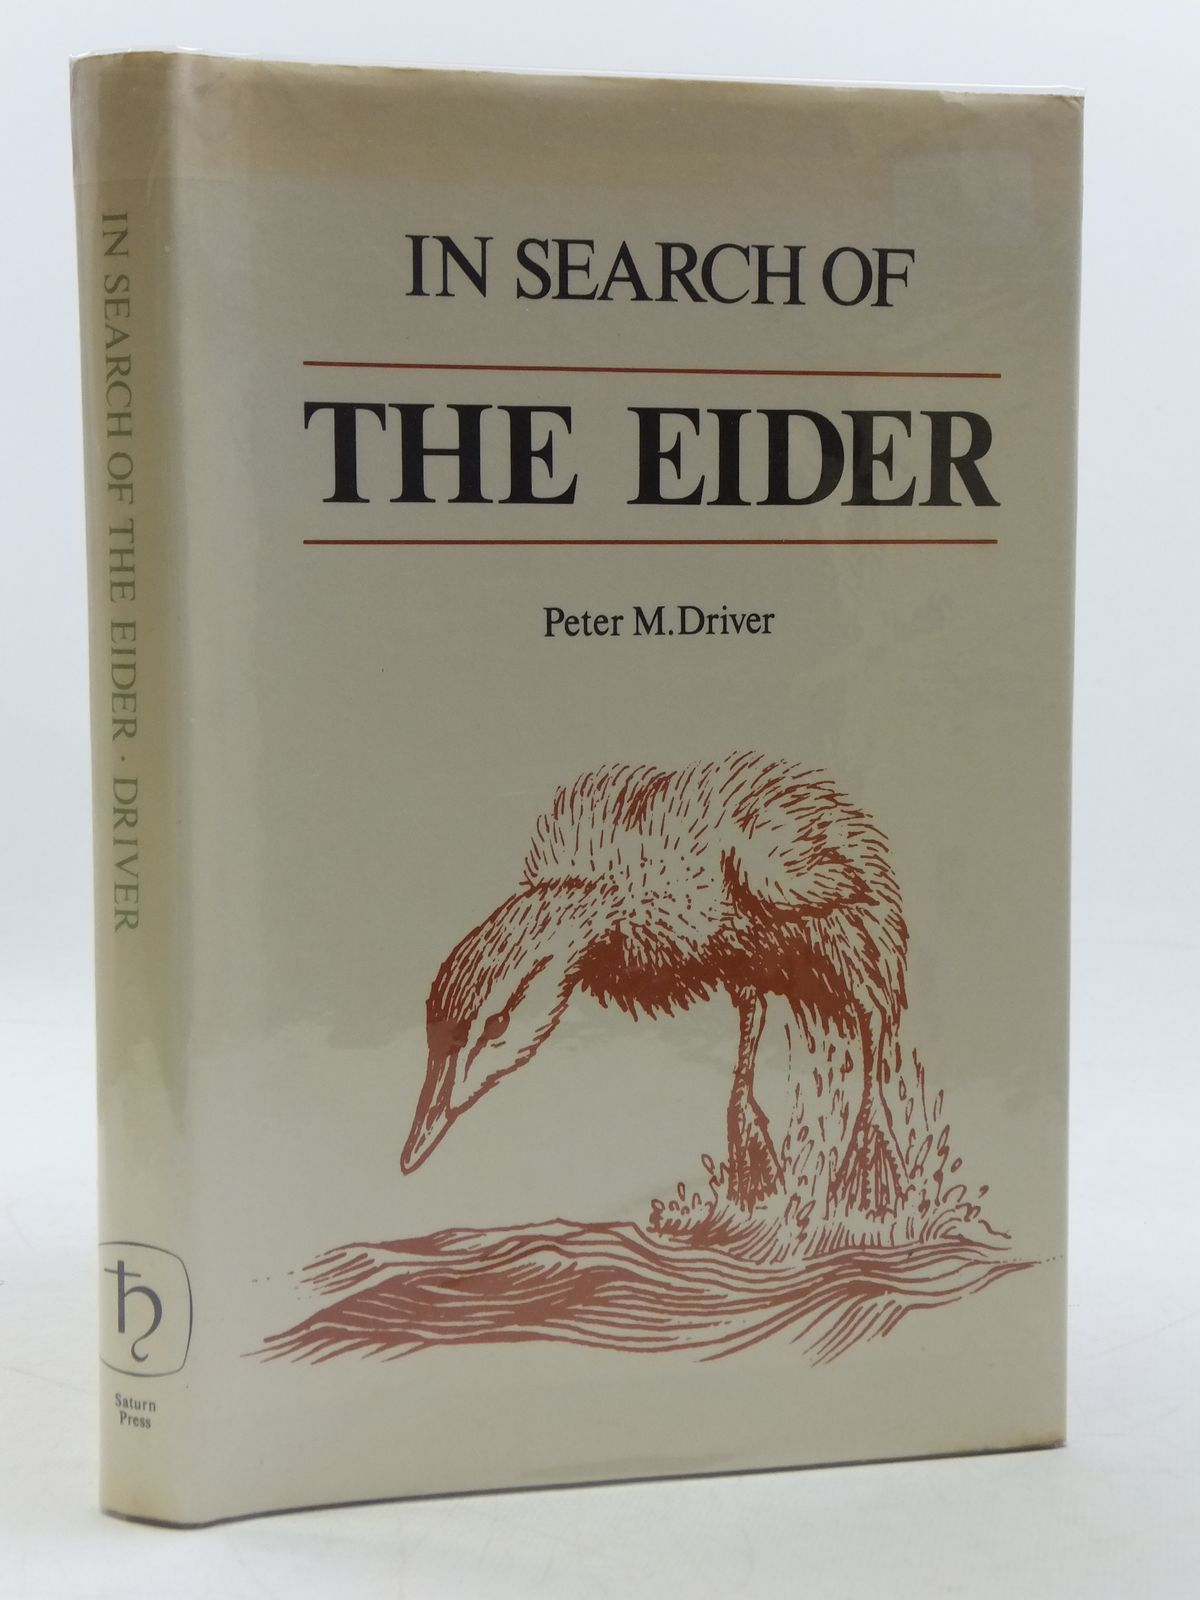 Photo of IN SEARCH OF THE EIDER written by Driver, Peter M. illustrated by Bygott, David published by The Saturn Press (STOCK CODE: 1605299)  for sale by Stella & Rose's Books